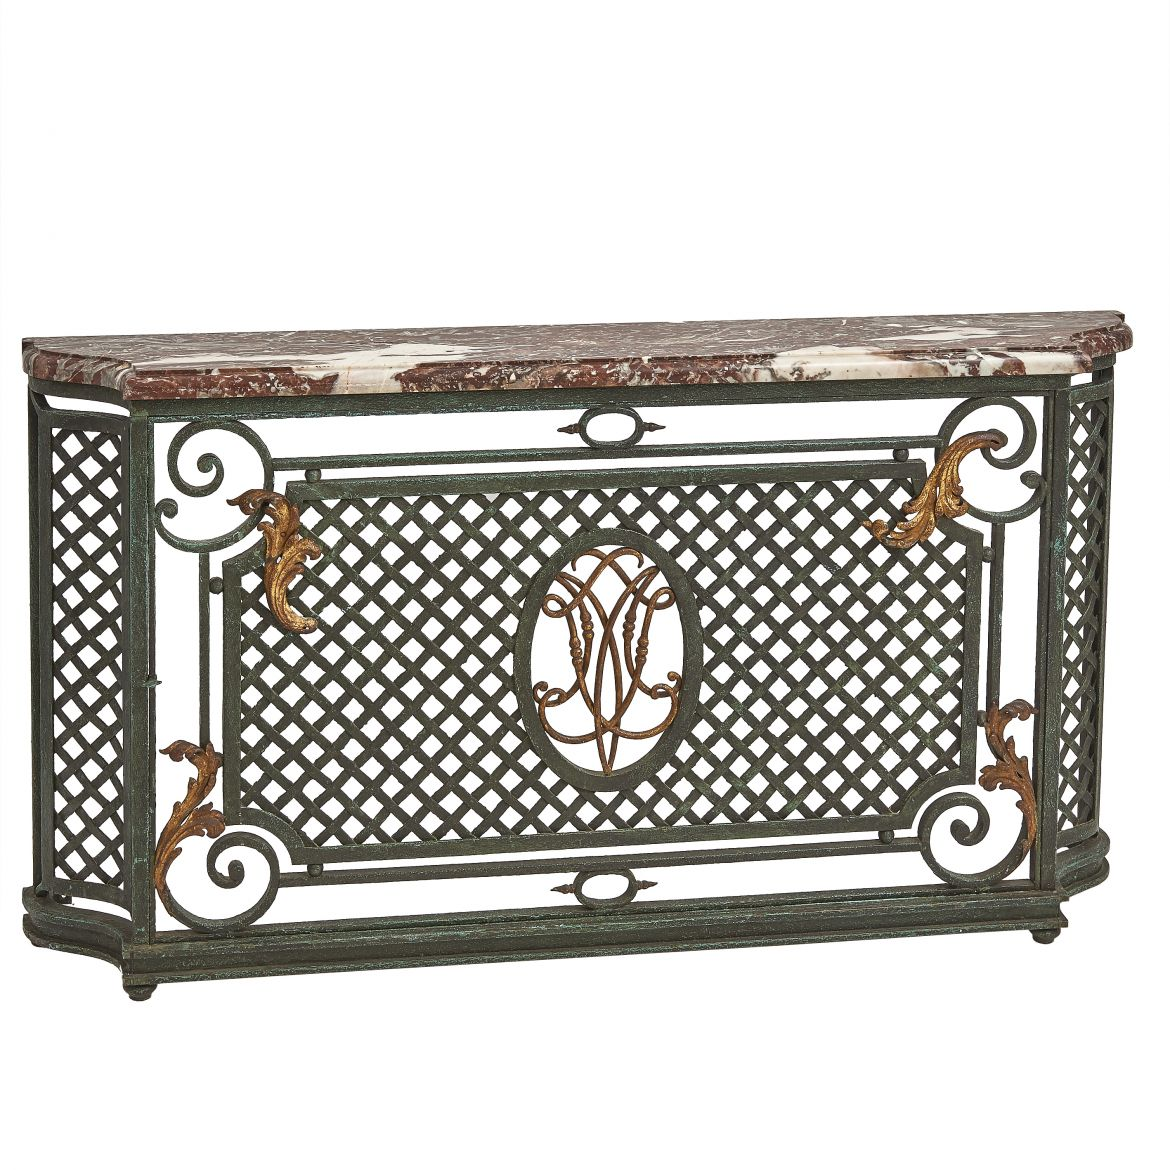 Wrought Iron Radiator Cover